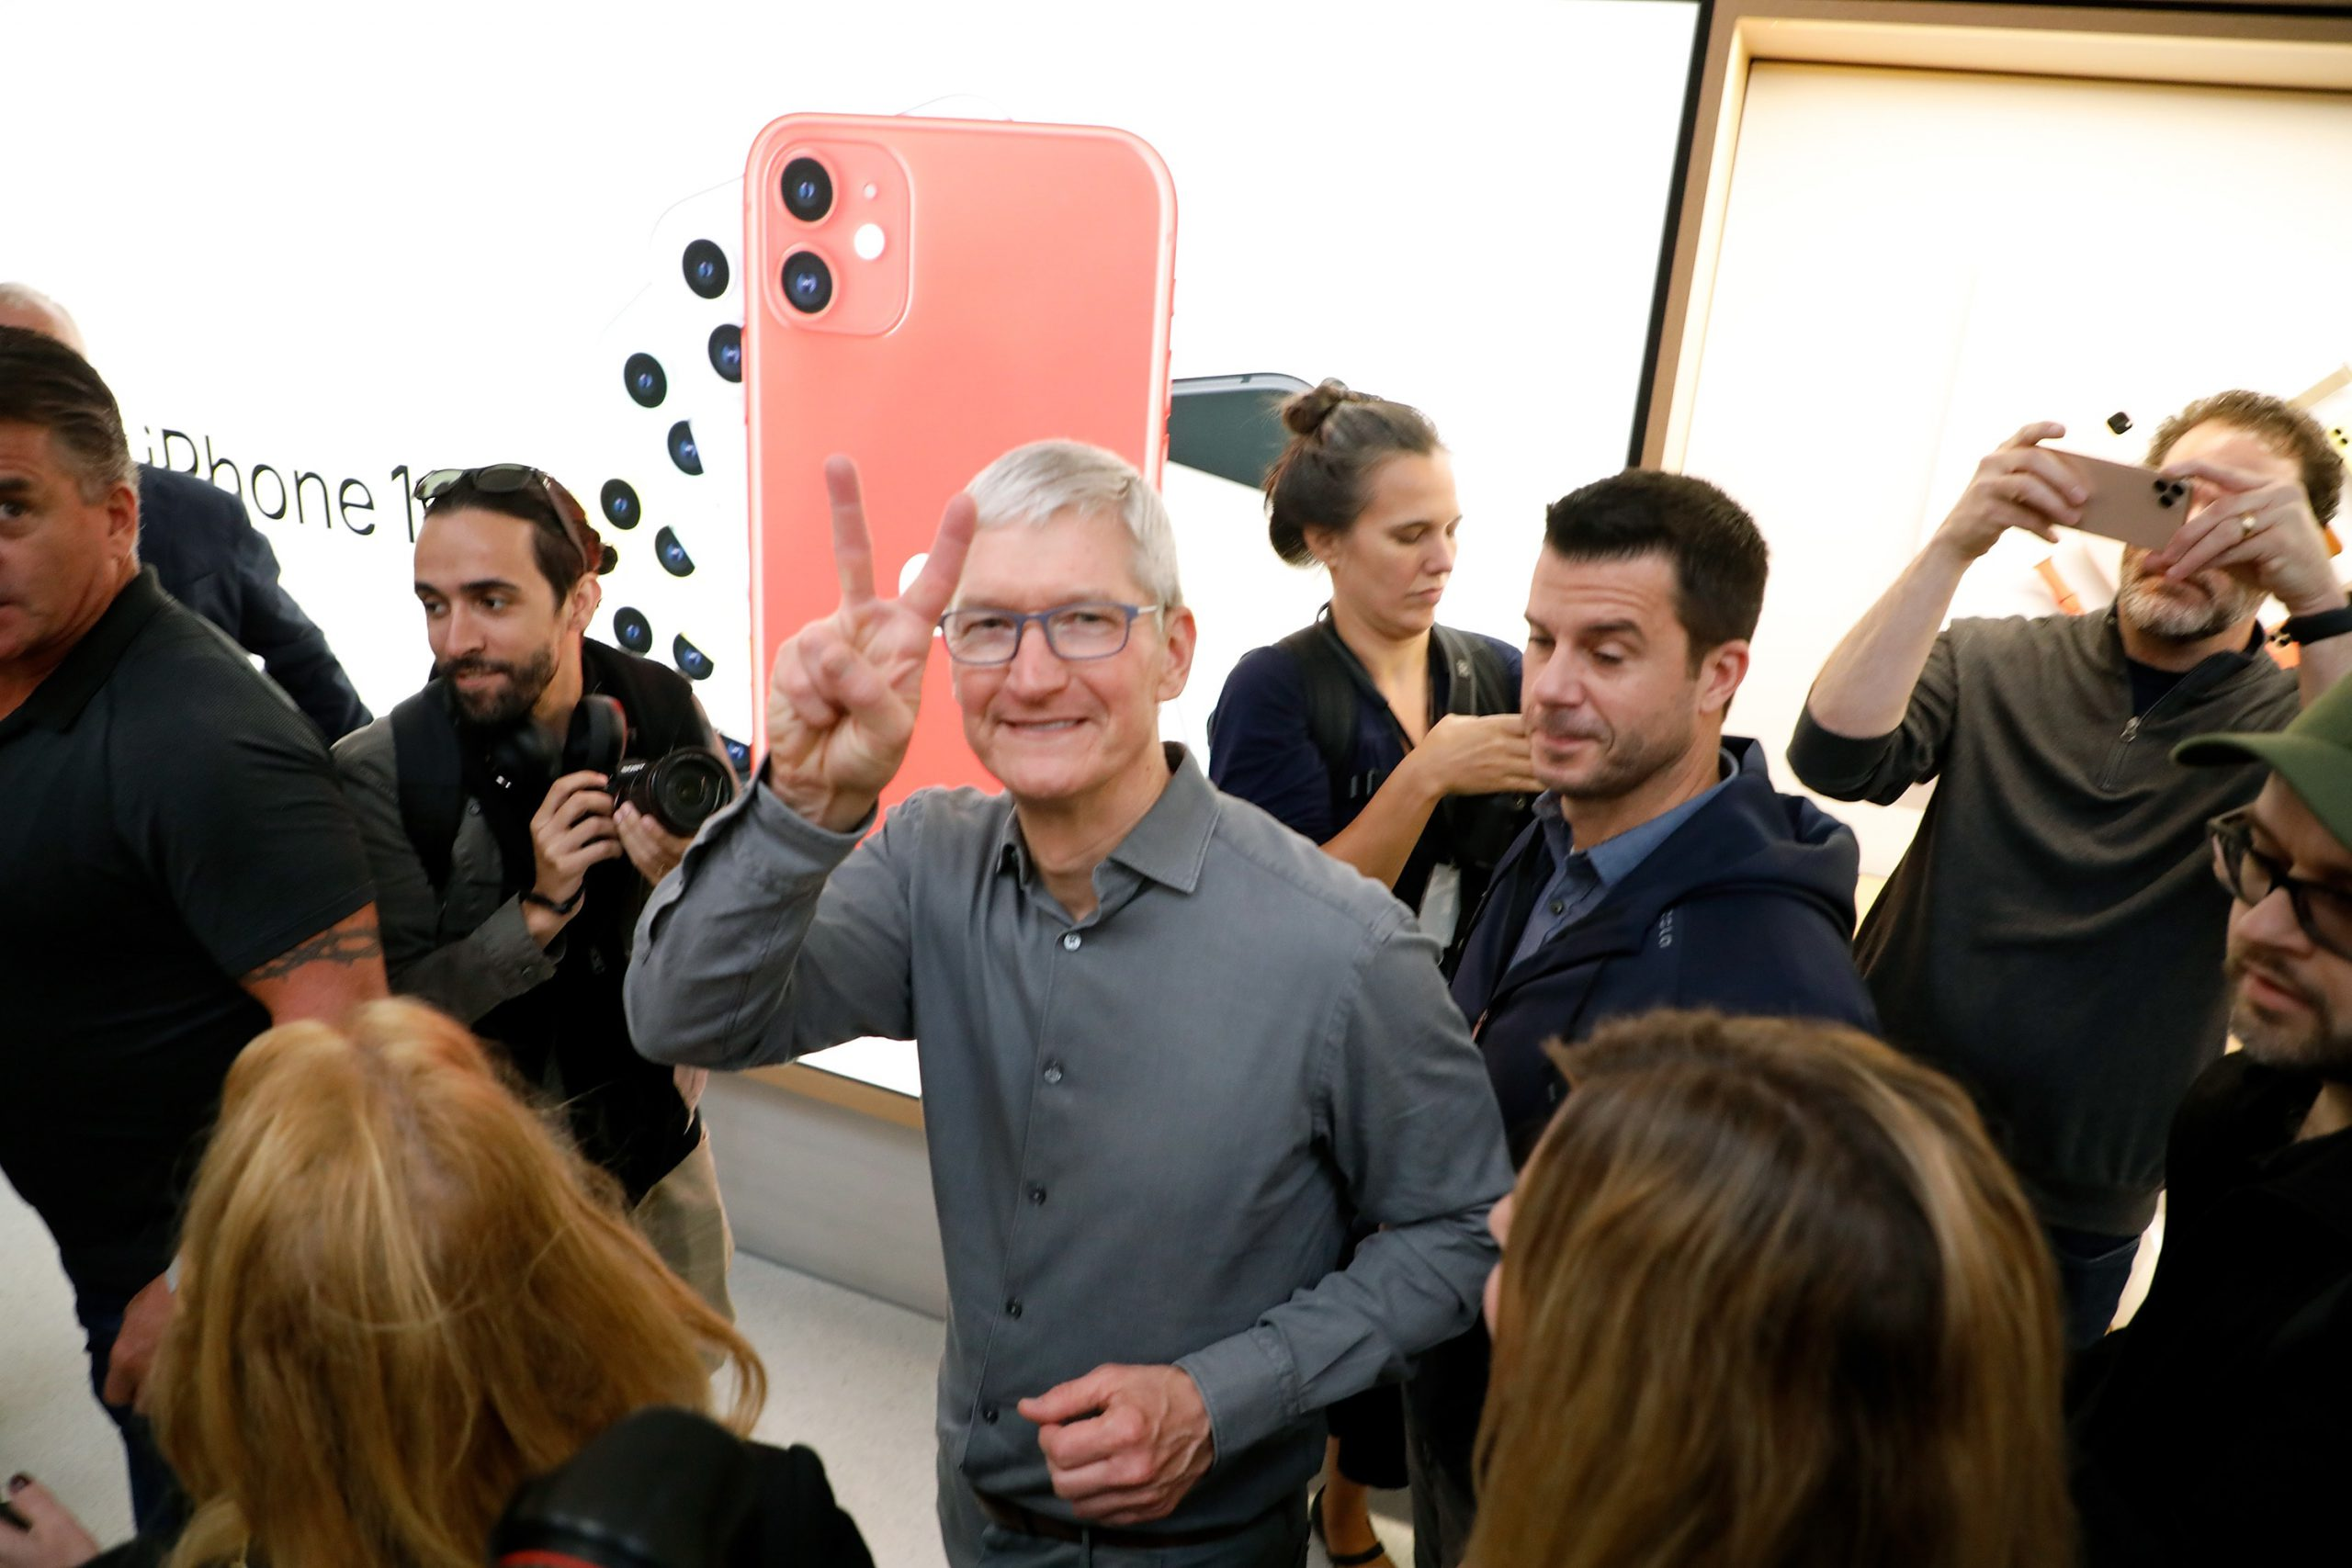 Apple now has $207.06 billion in cash on hand, up slightly from last quarter